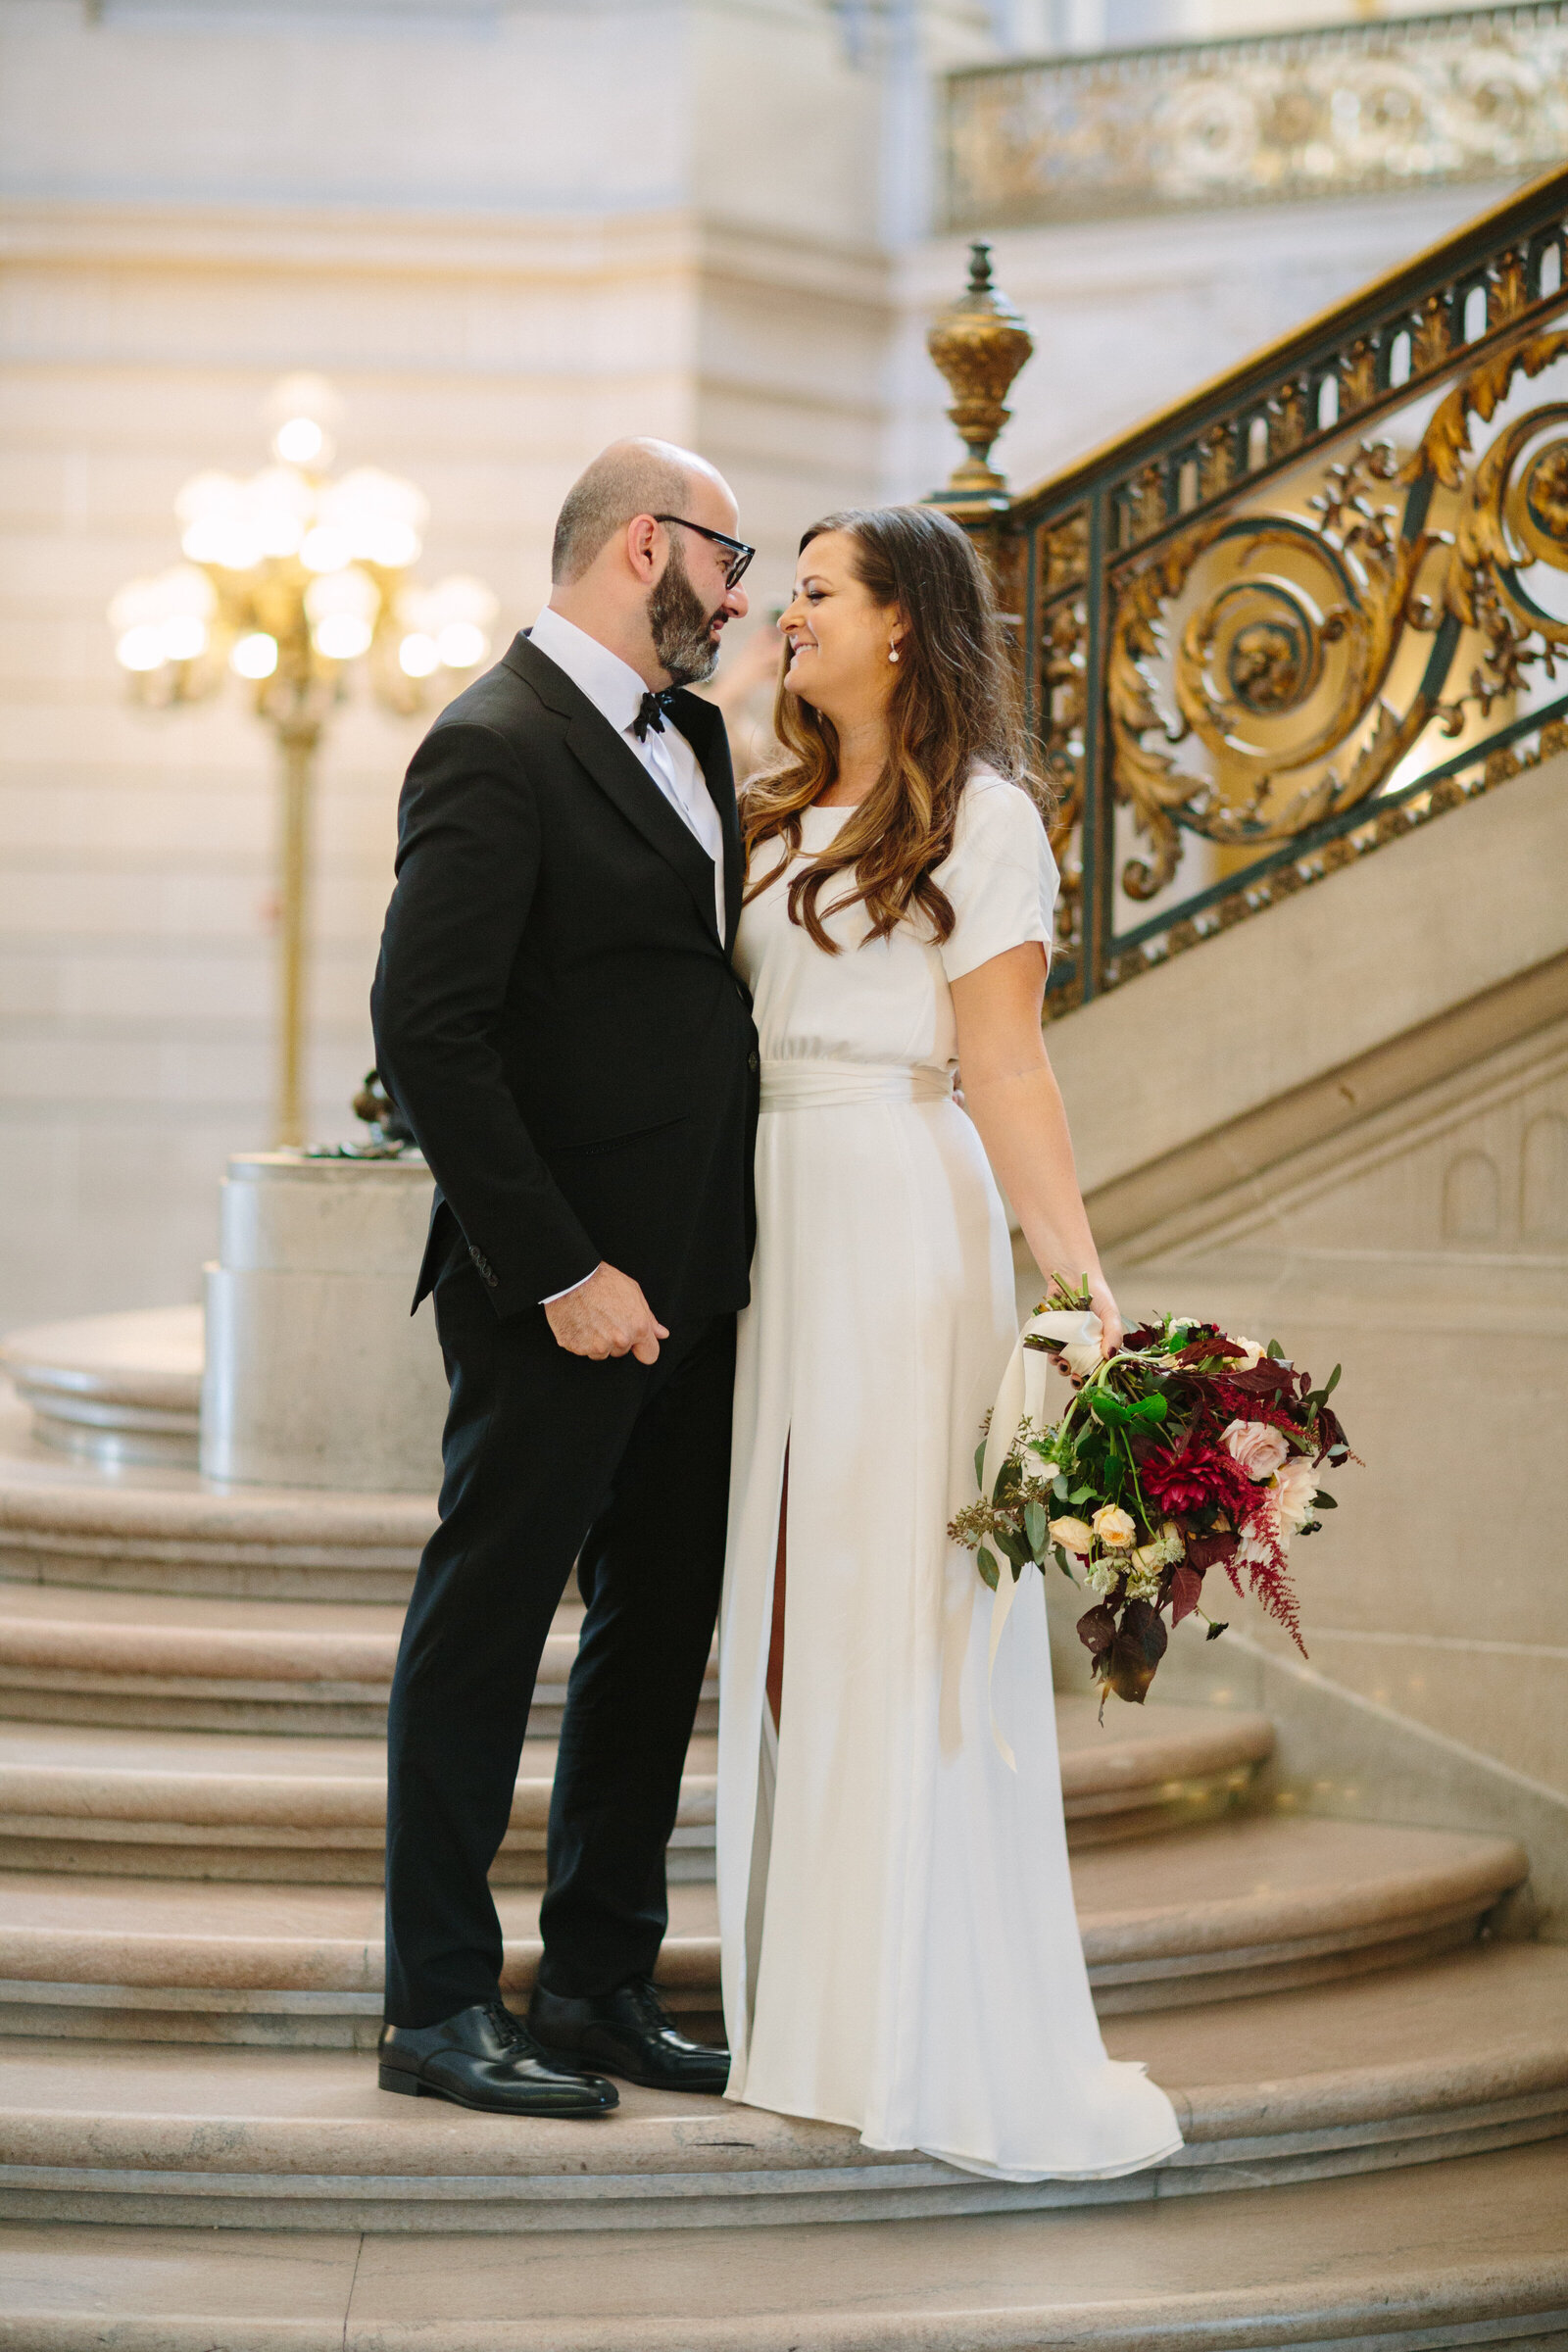 larissa-cleveland-elope-eleopement-intimate-wedding-photographer-san-francisco-napa-carmel-103